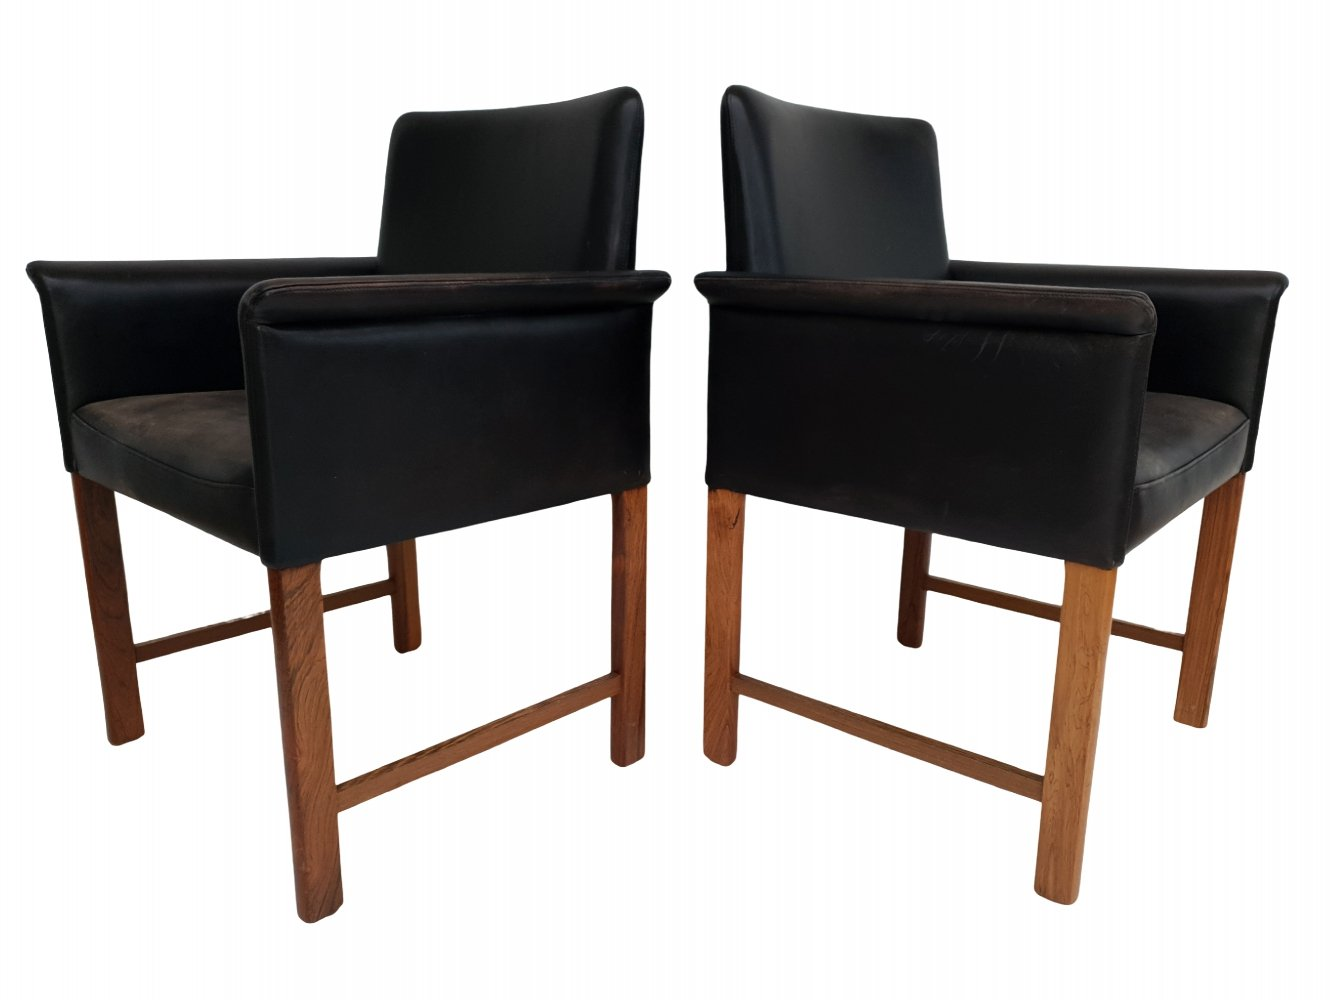 Danish leather & rosewood conference chairs by Hans Olsen, 1960s